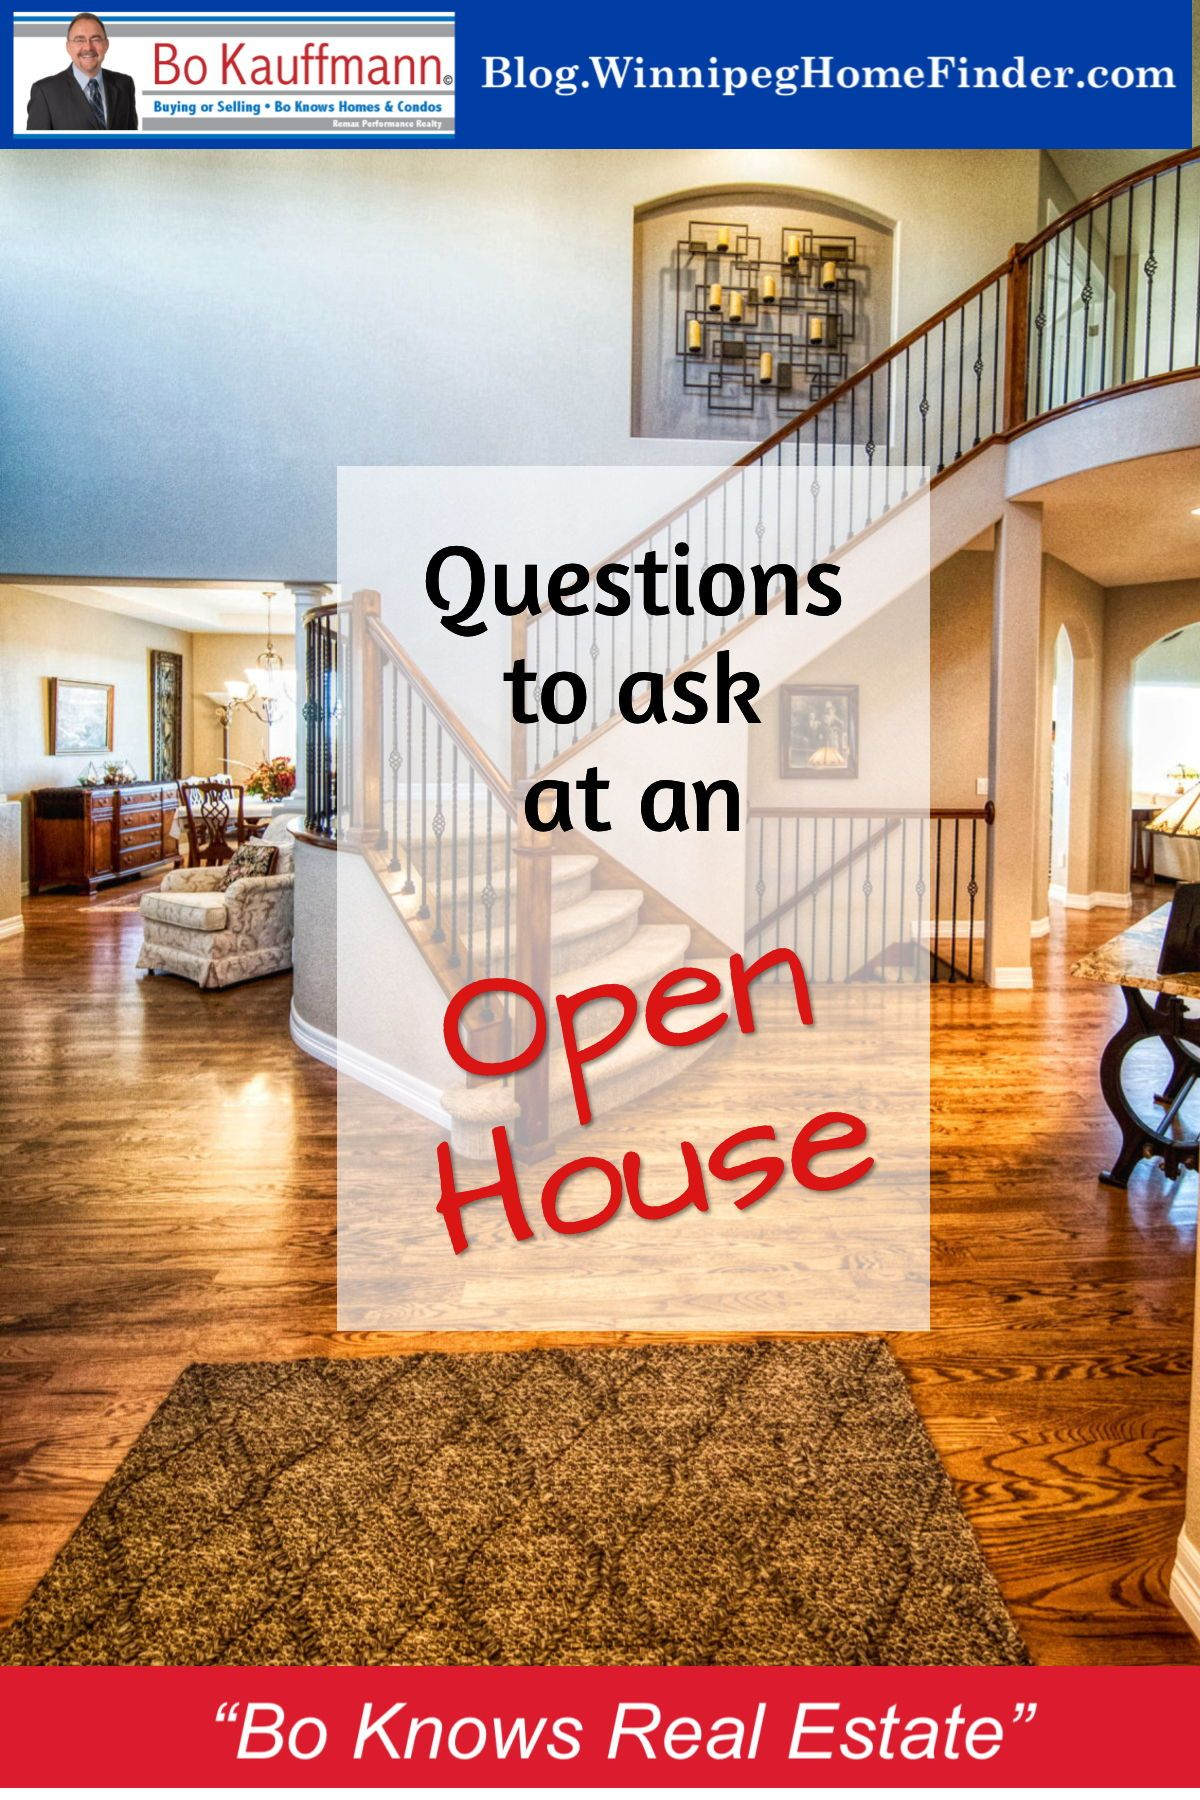 Should I sell my house ?: 7 questions you   should ask yourself before you put it on the market